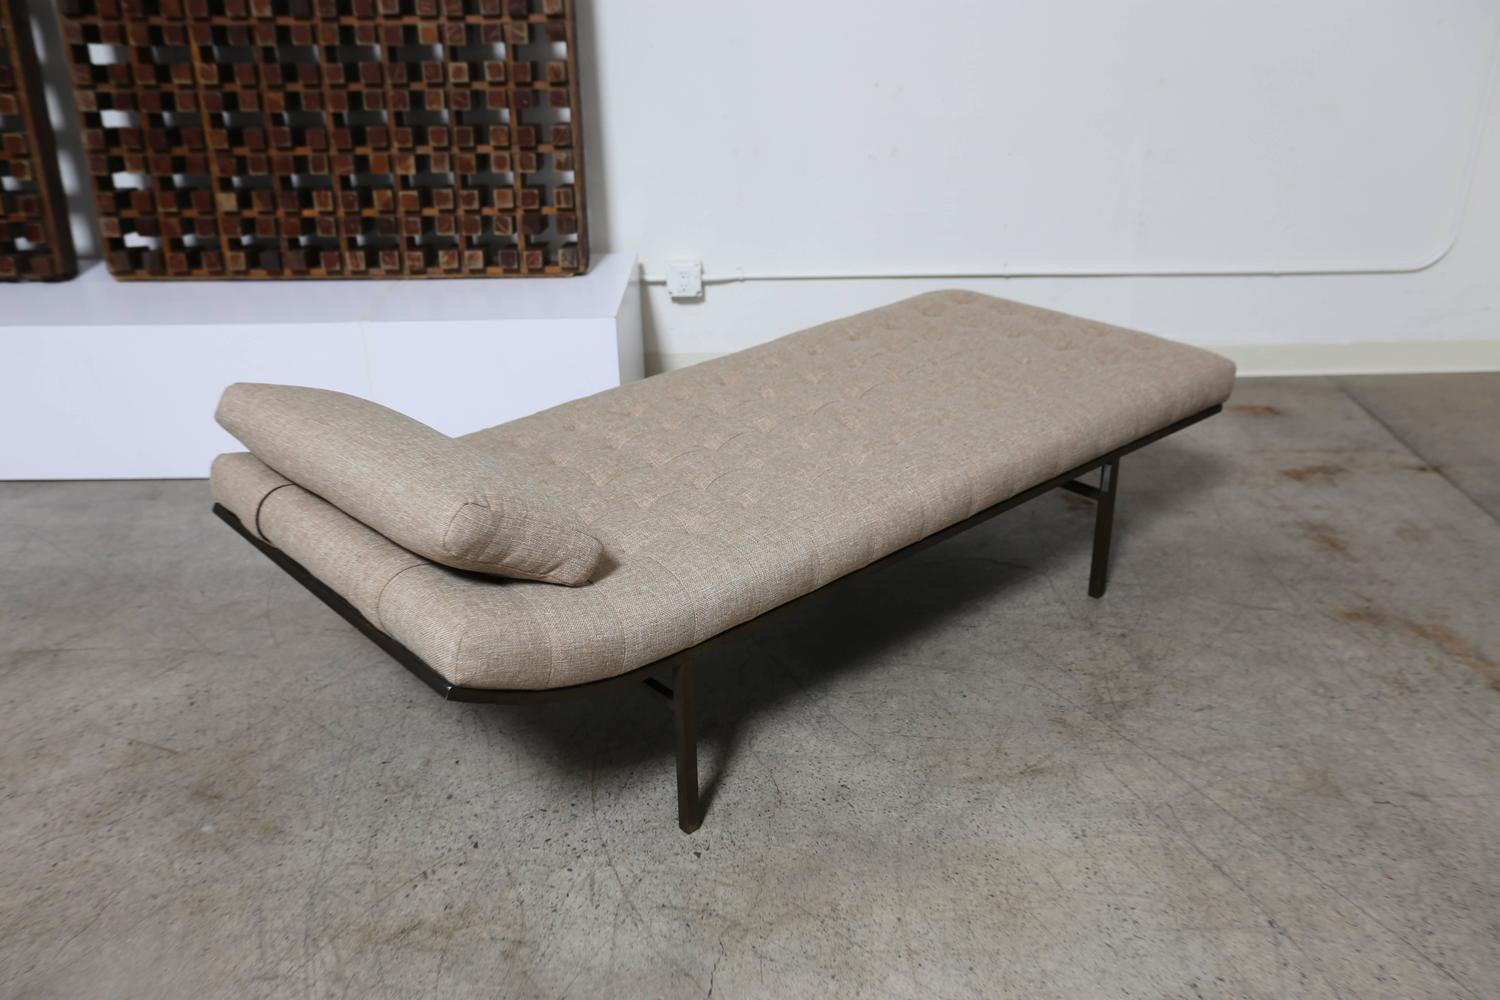 Chaise longue by jules heumann for sale at 1stdibs for Chaise longue sale